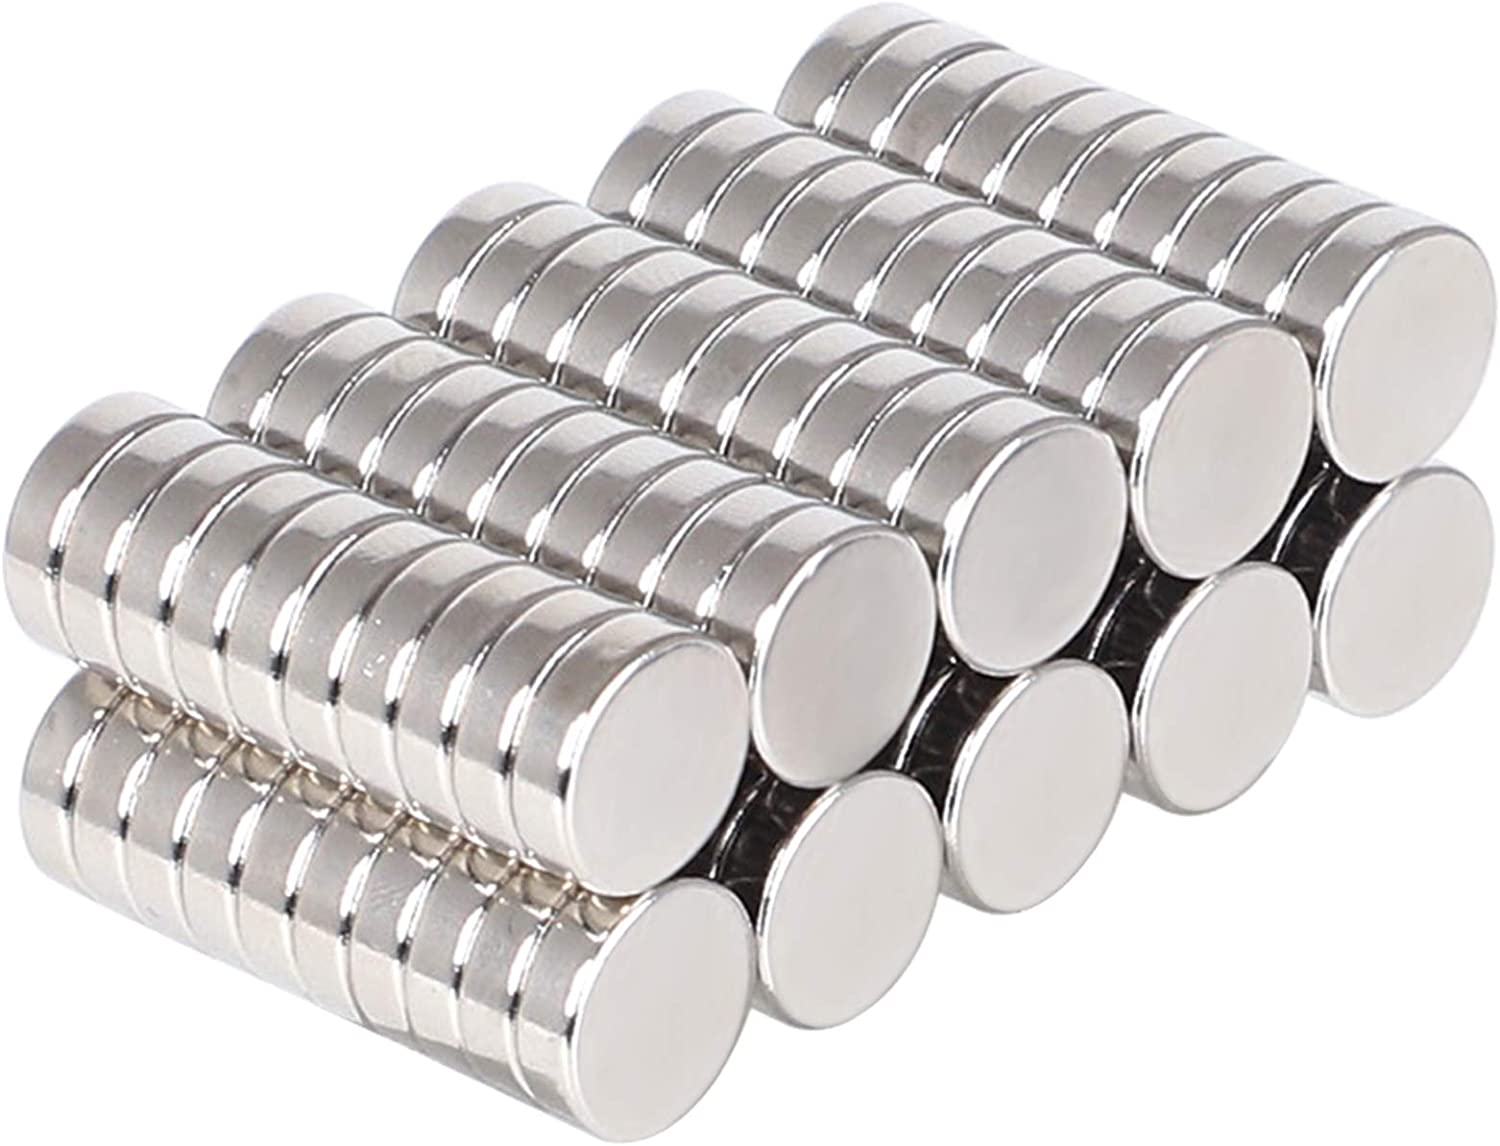 SMARTAKE 10 Pcs Push Pin Magnets /& 30 Pcs Round Refrigerator Magnets Multi-Use Premium Brushed Nickel for Fridge Office and School Kitchen Dry Erase Board in Home Whiteboard